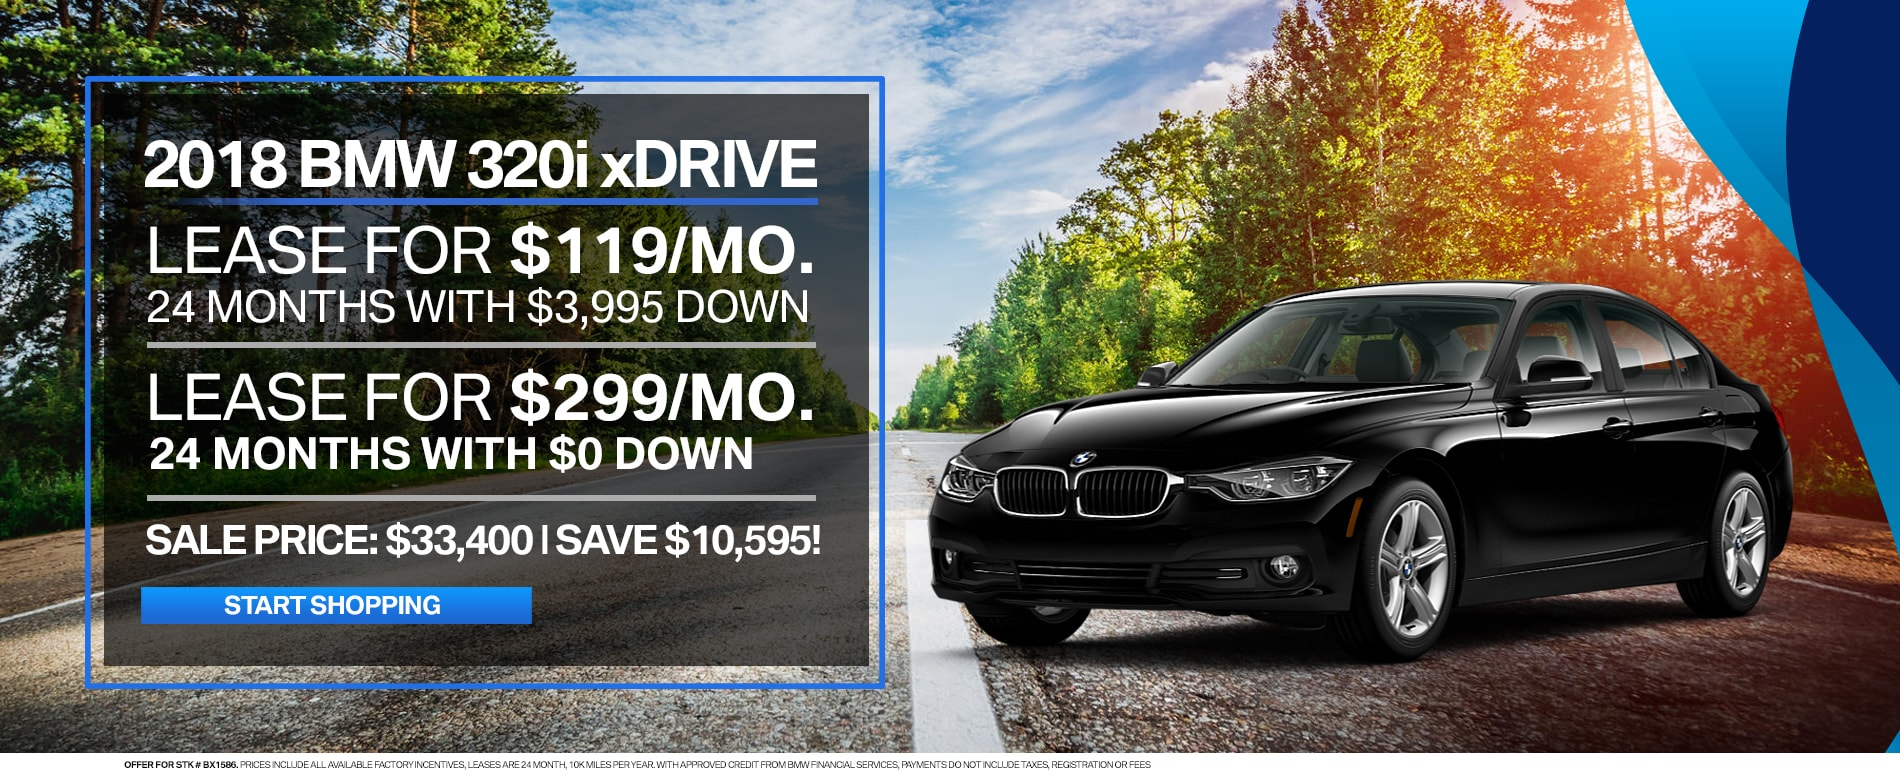 suv joplin springfield car superstore used proudly extensive reliable new us our dealer mo sign bmw your all and serves missouri to allows inventory for blog as of